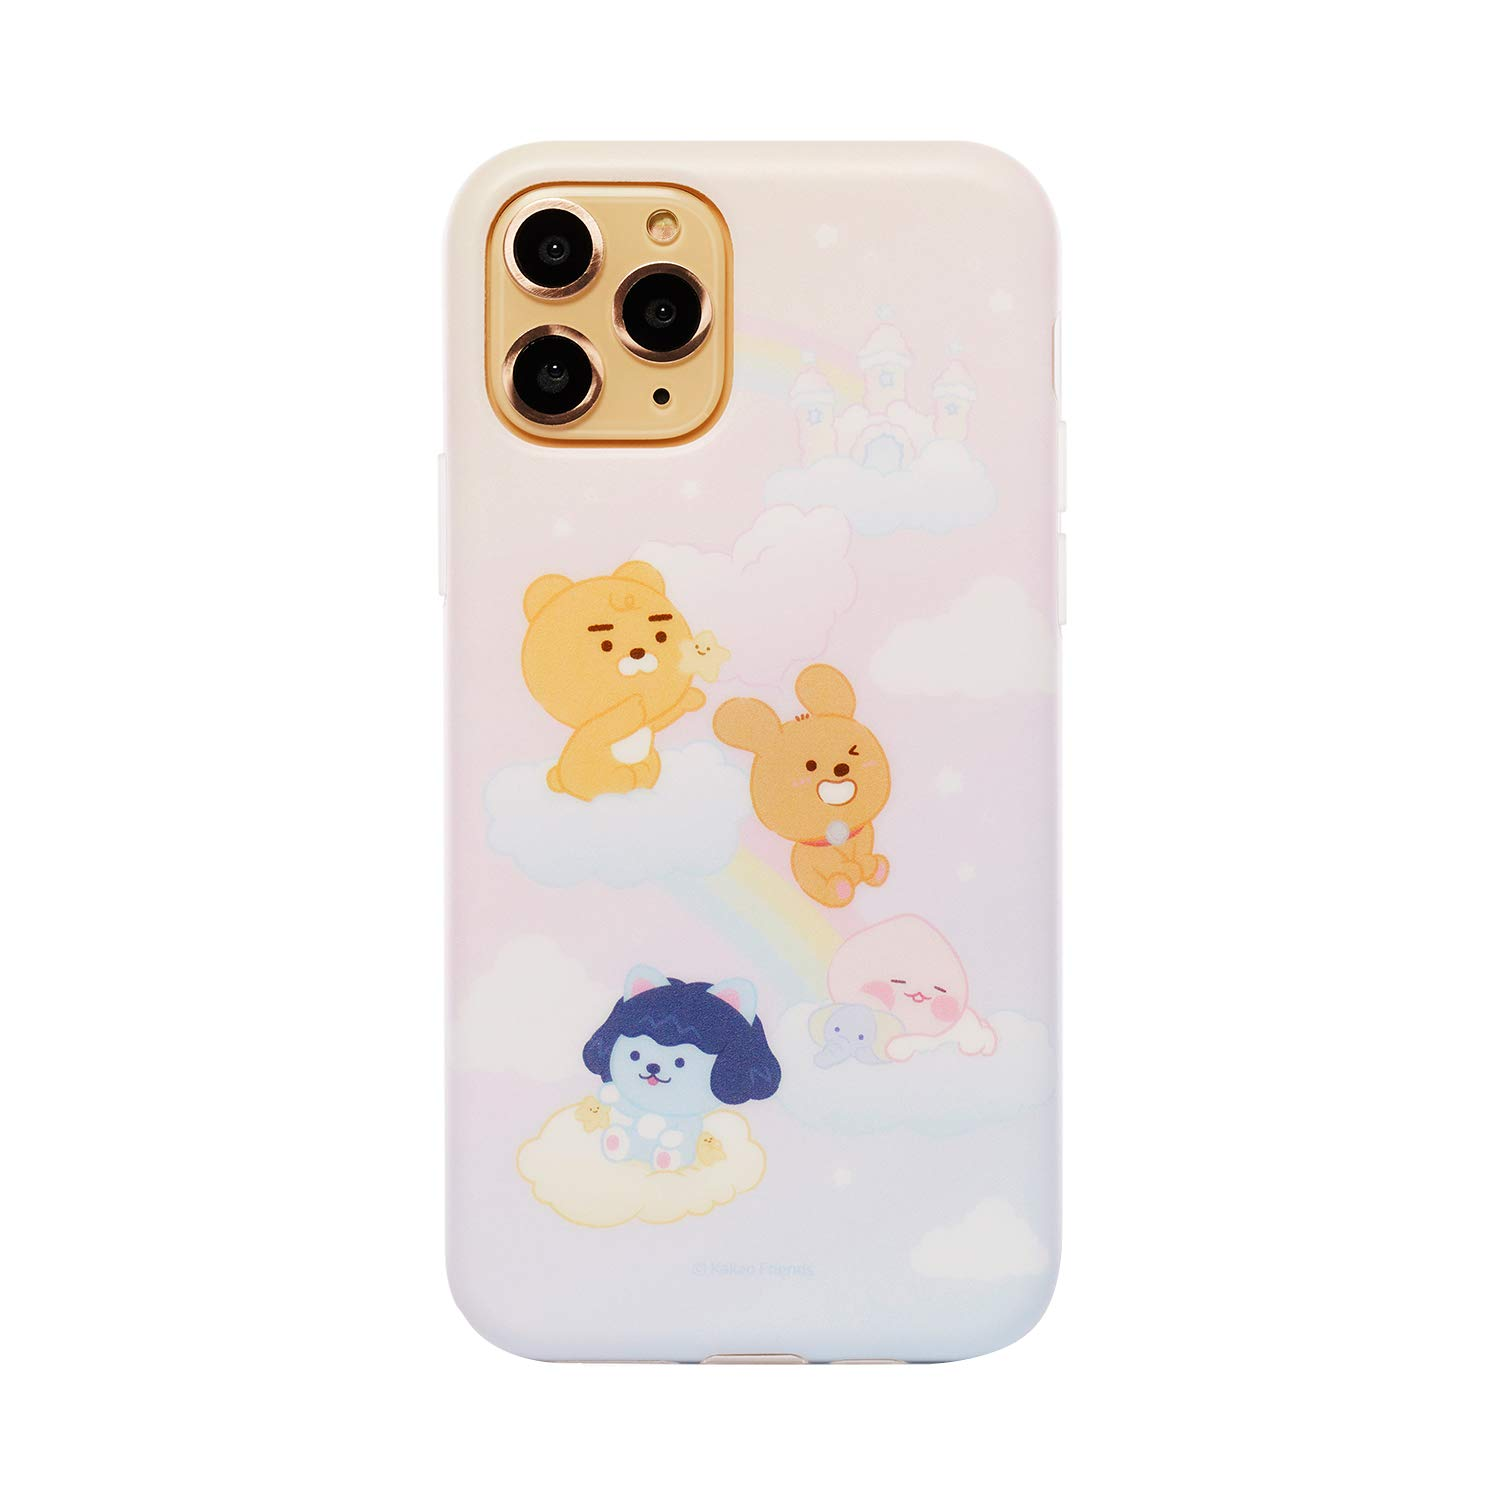 KAKAO FRIENDS Official- Baby Dreaming TPU Cell Phone Case, Compatible with iPhone (Little Friends, iPhone 11 Pro Max)